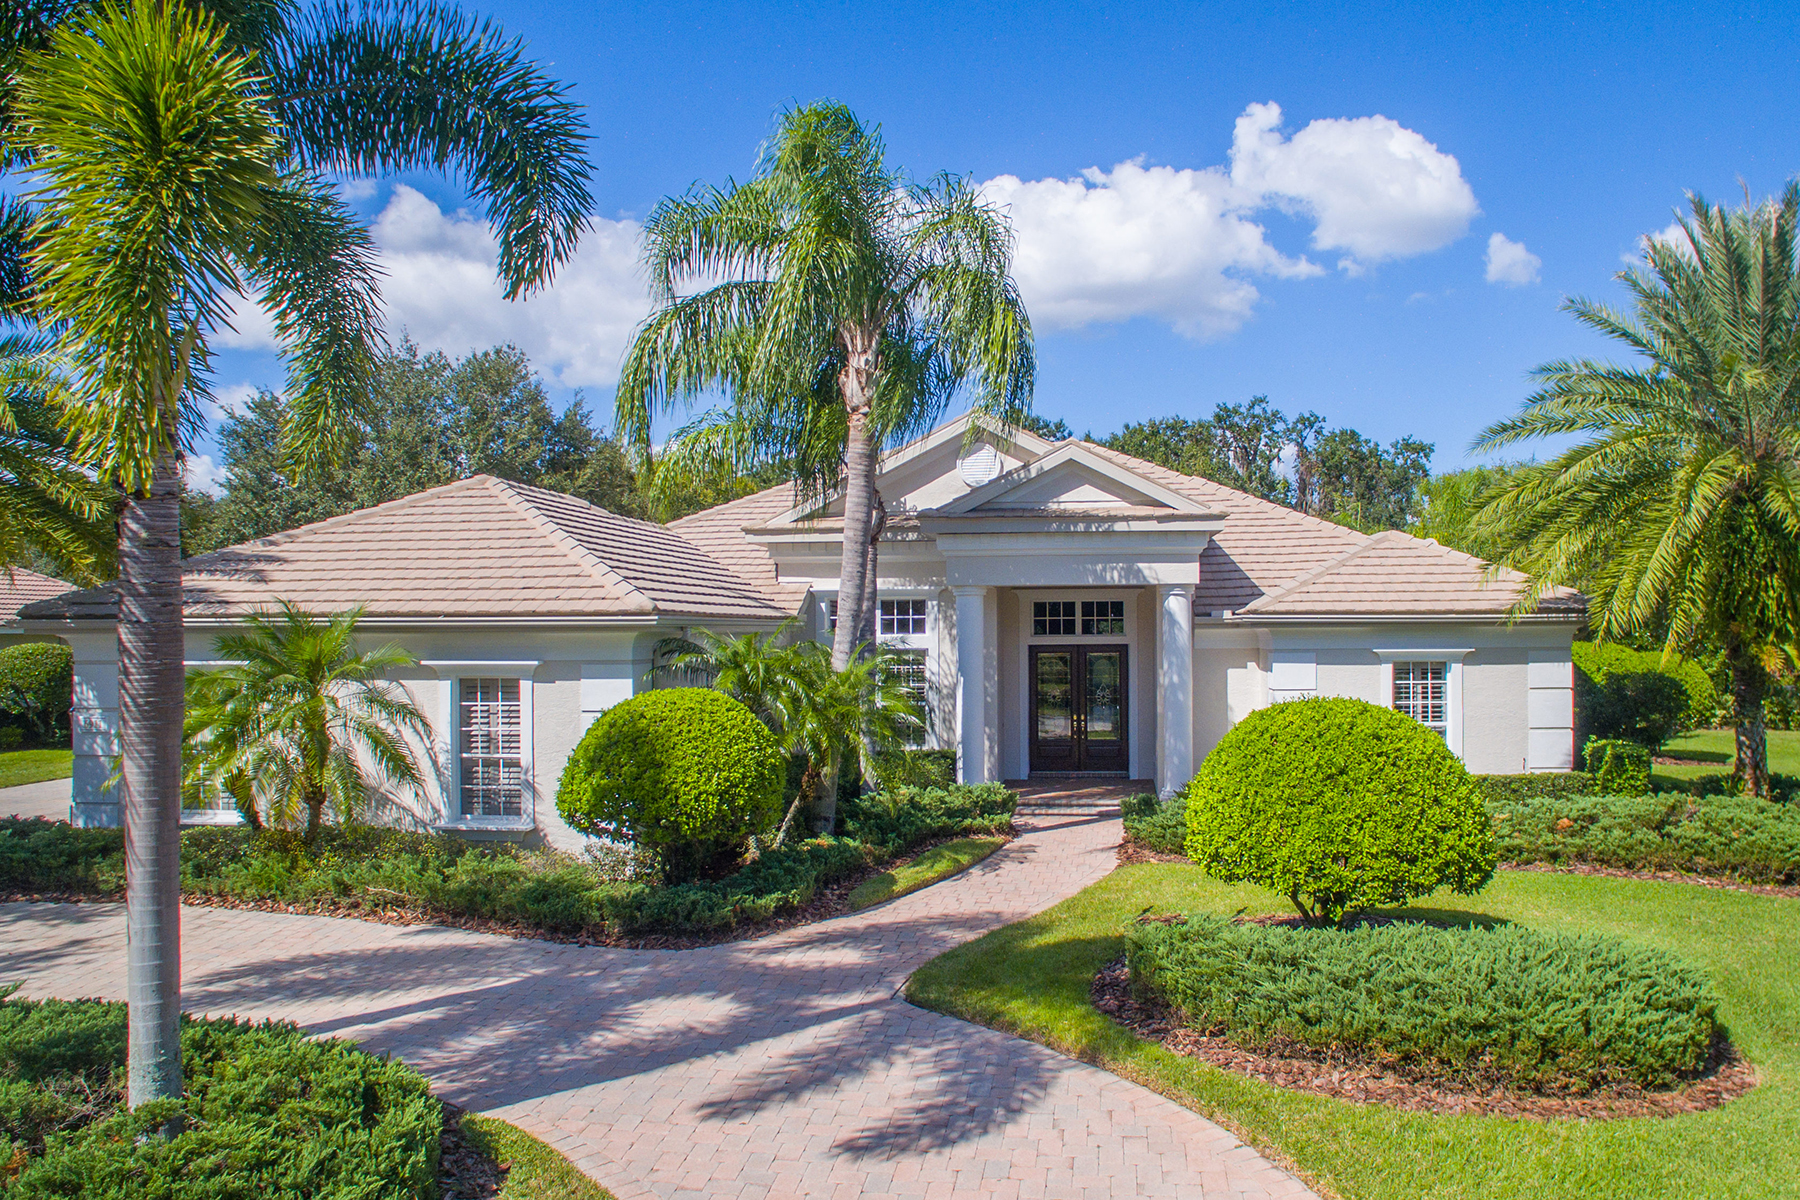 Single Family Home for Sale at LAKEWOOD RANCH COUNTRY CLUB 6911 Winners Cir Lakewood Ranch, Florida, 34202 United States